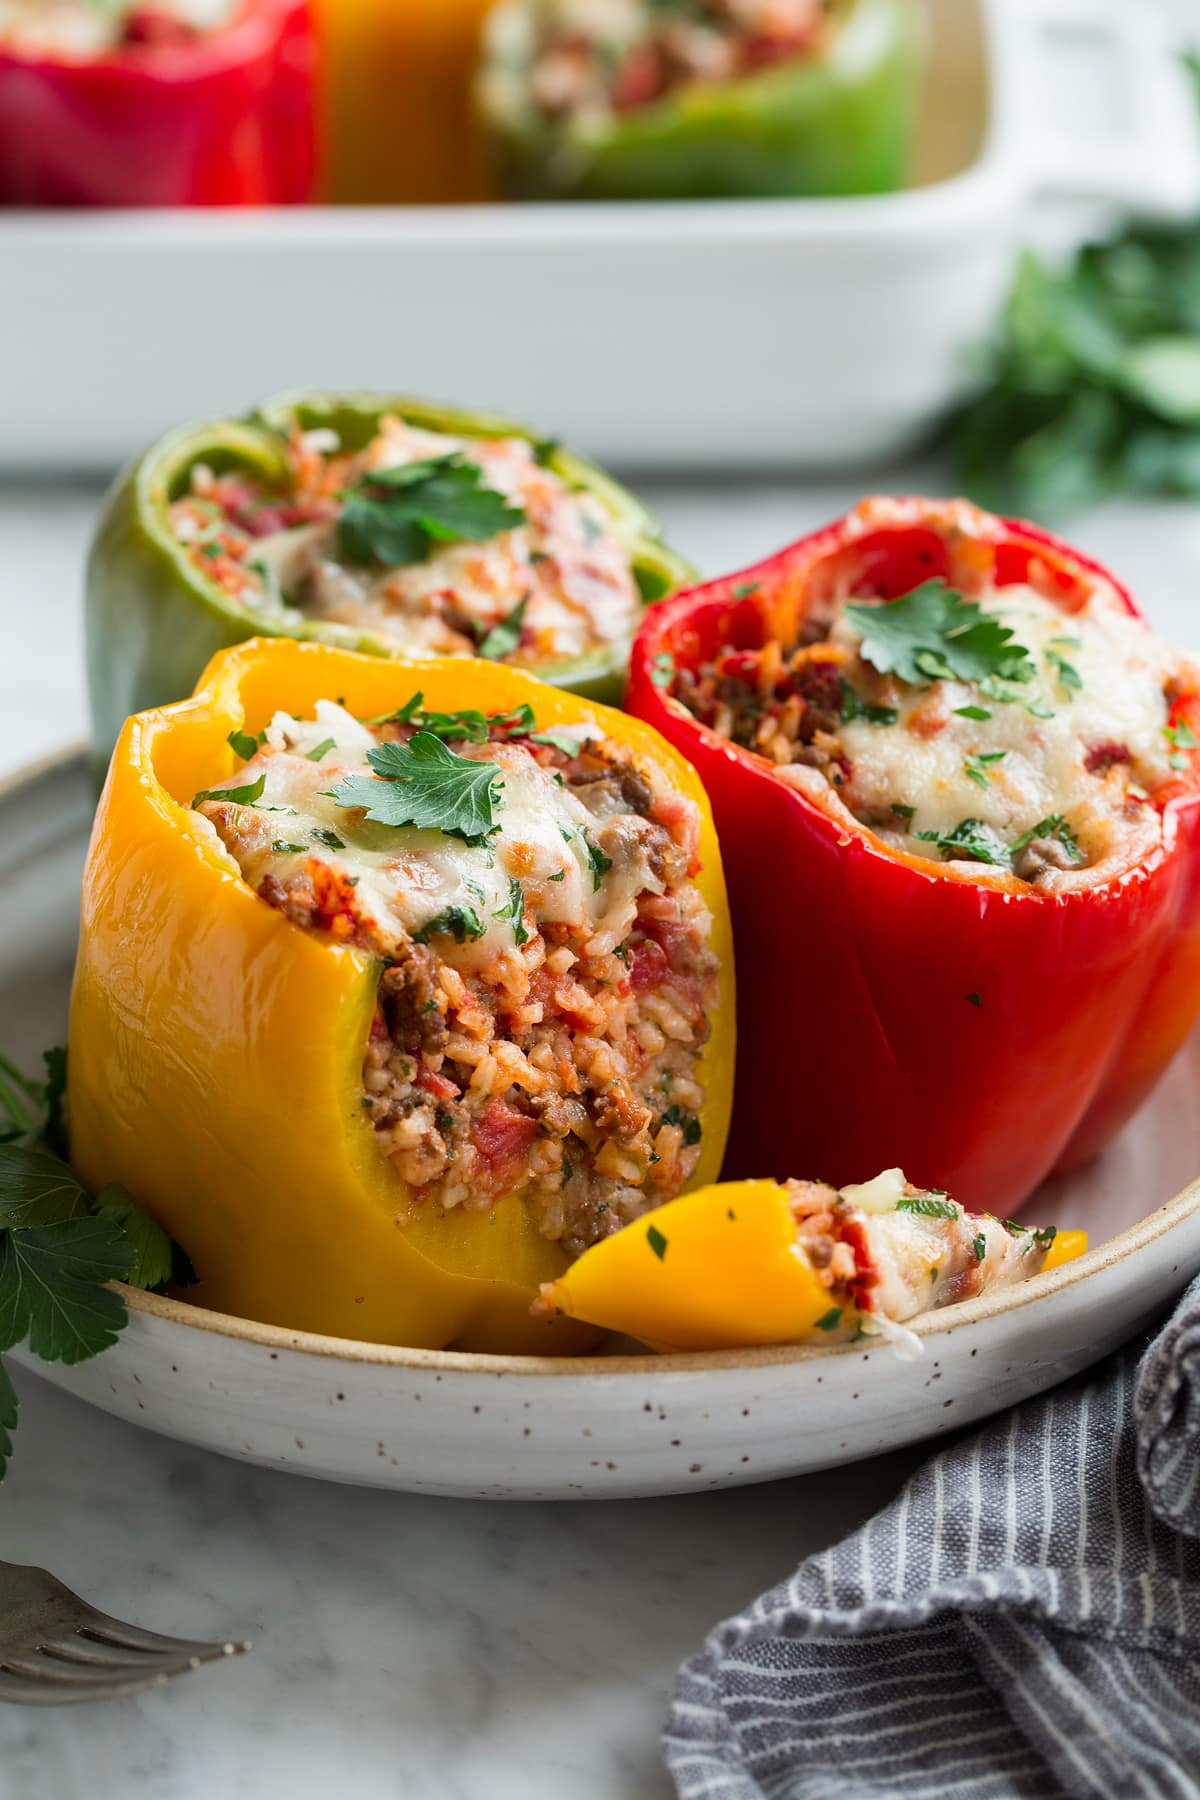 Red yellow and green stuffed pepper in a serving bowl.